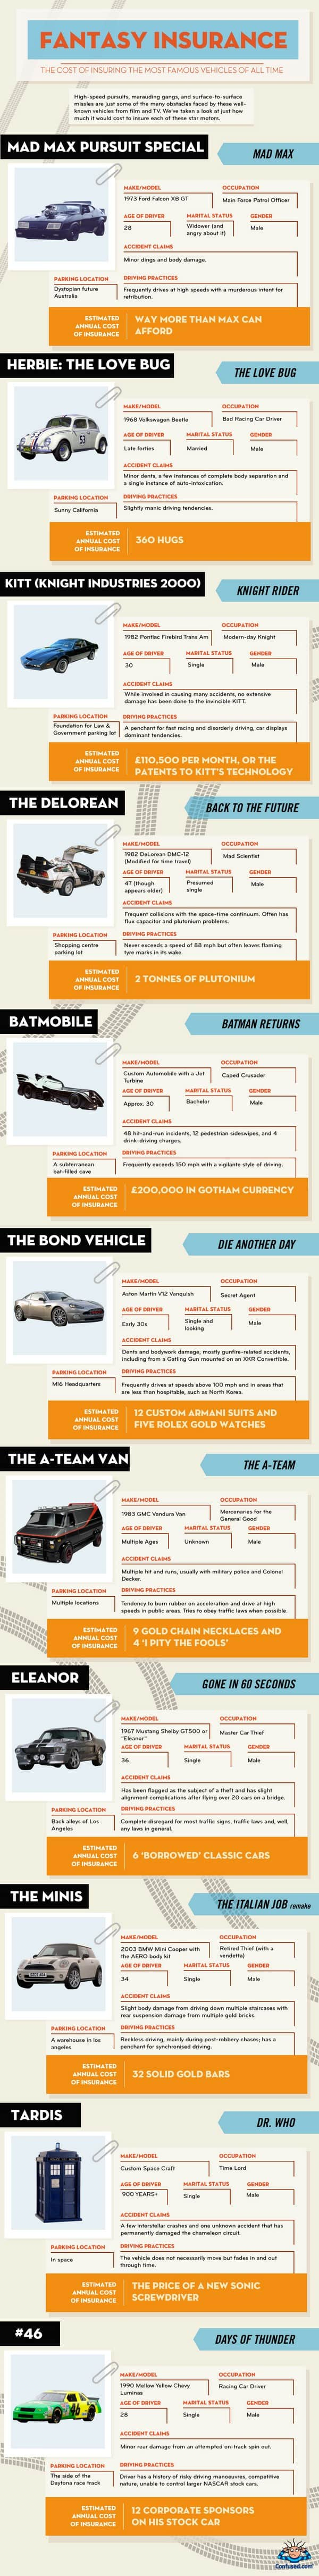 fantasy car insurance infographic